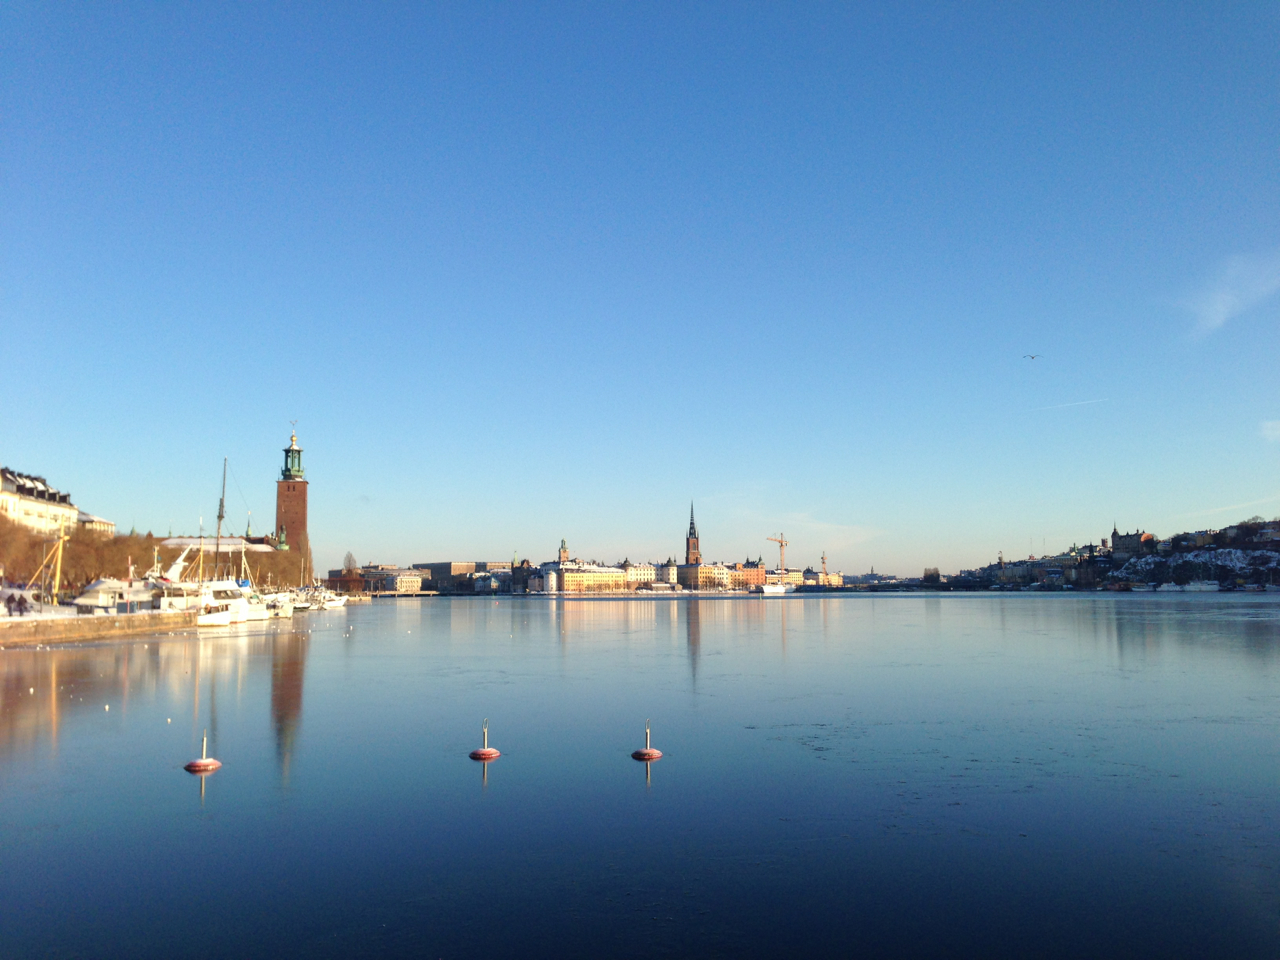 Stockholm at Winter, seen from Norr Målarstrand, Kungsholmen